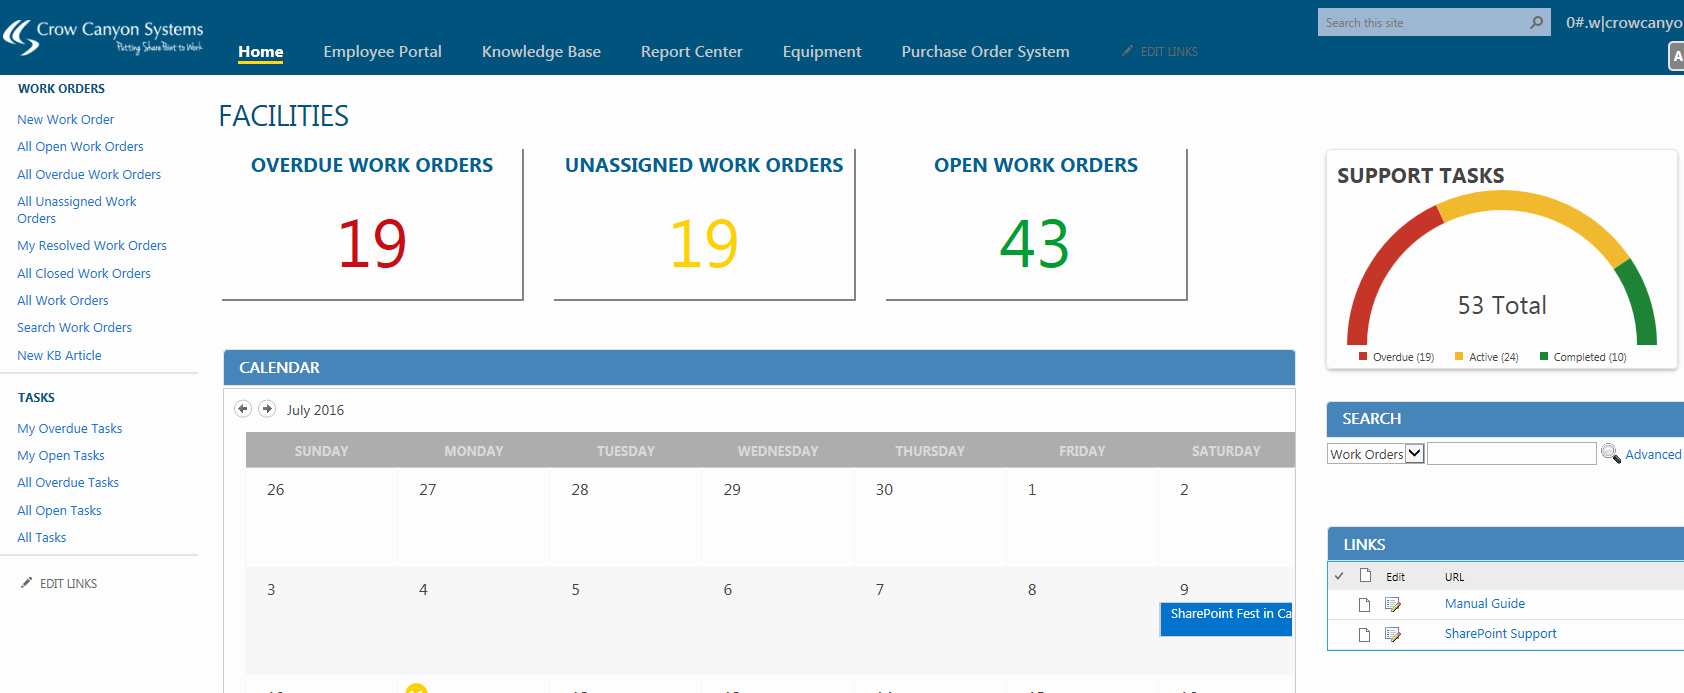 Sharepoint Work order Tracking System Best Of Equipment Tracking Work orders for Point & Fice 365